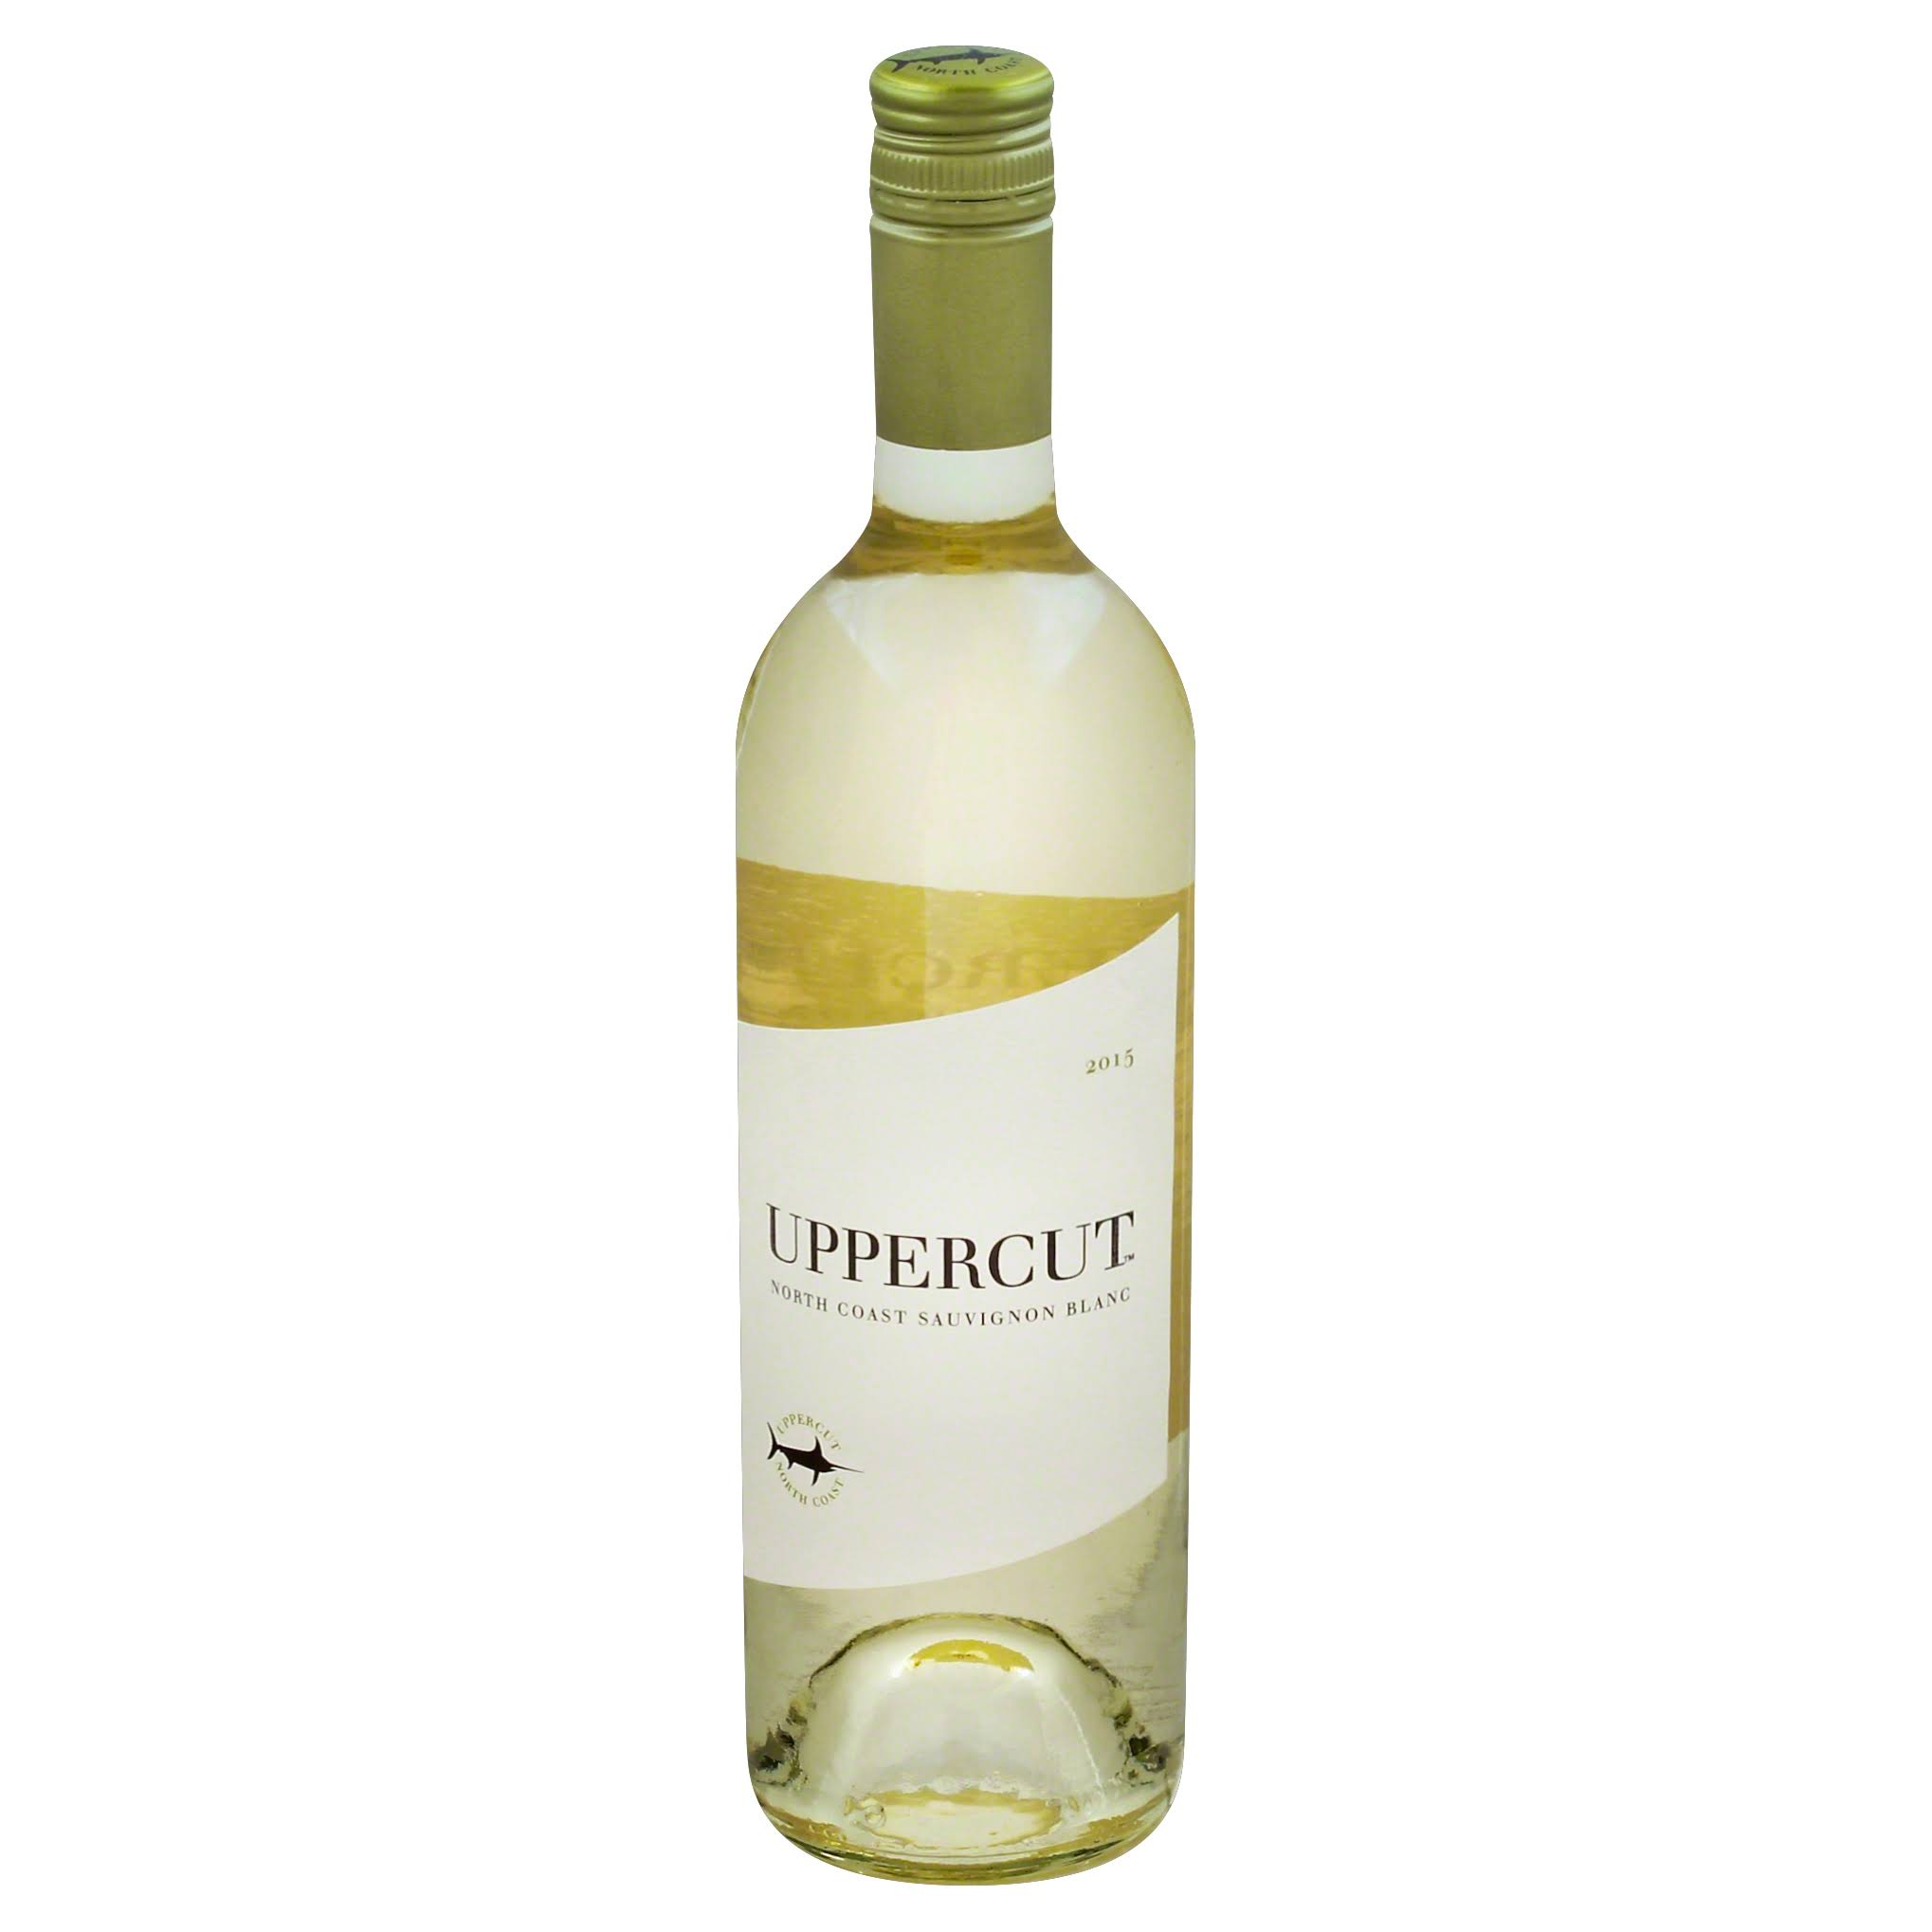 Uppercut Sauvignon Blanc, North Coast, 2015 - 750 ml